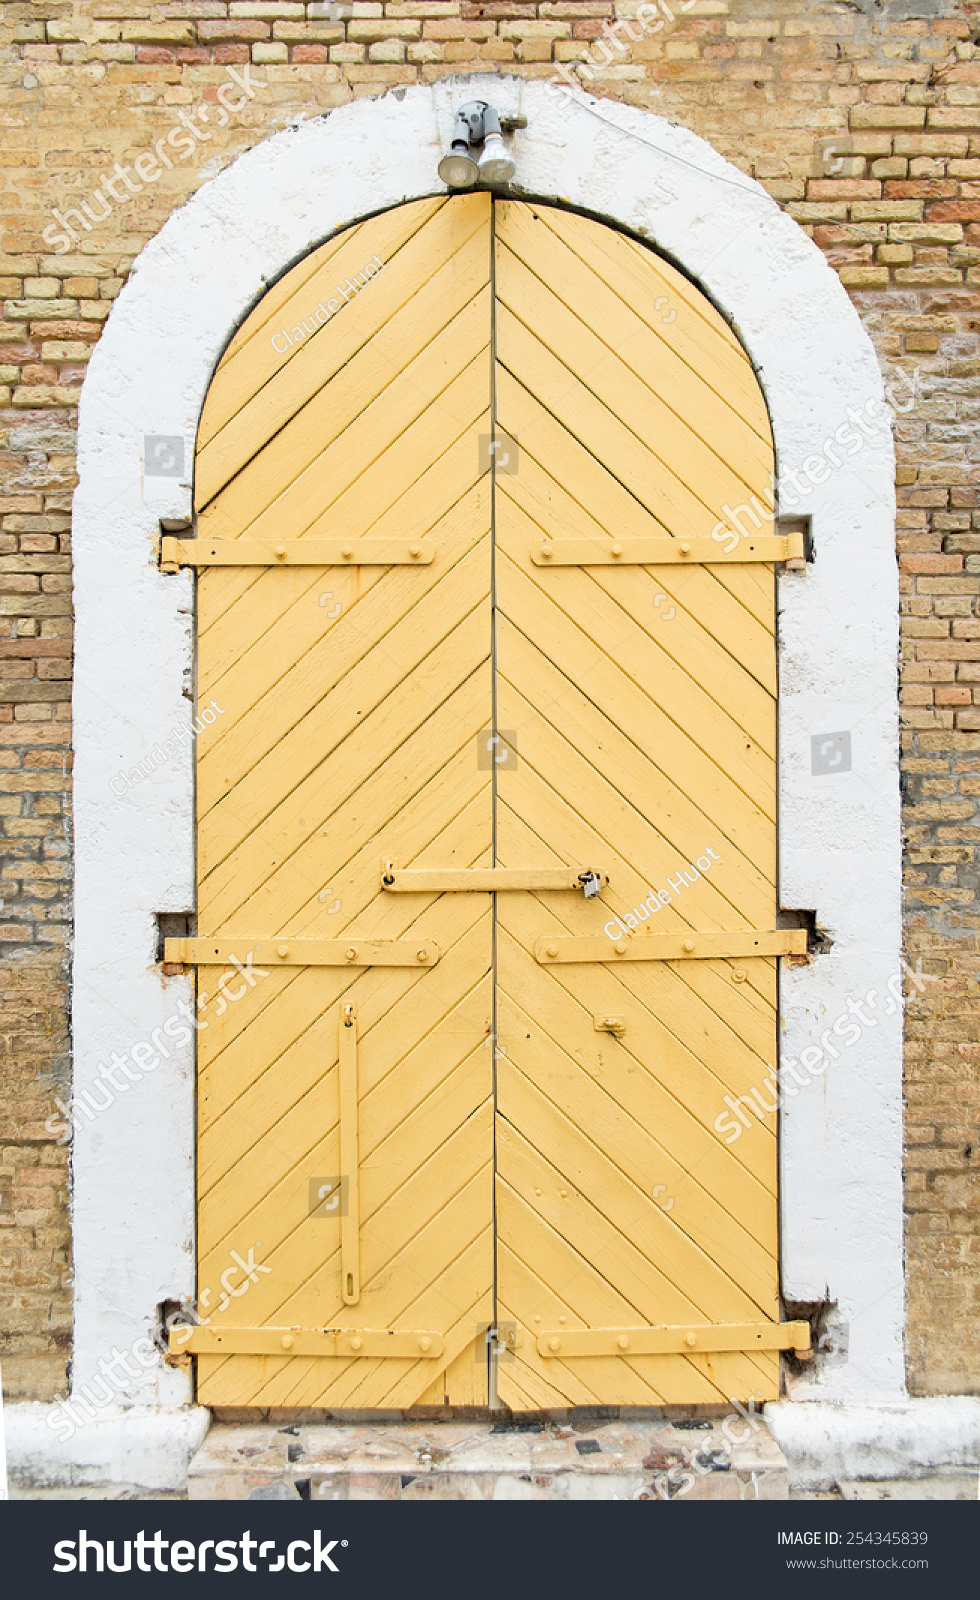 Old closed door in front of a building on the island of Saint Thomas part of the US Virgin Islands in the Caribbean